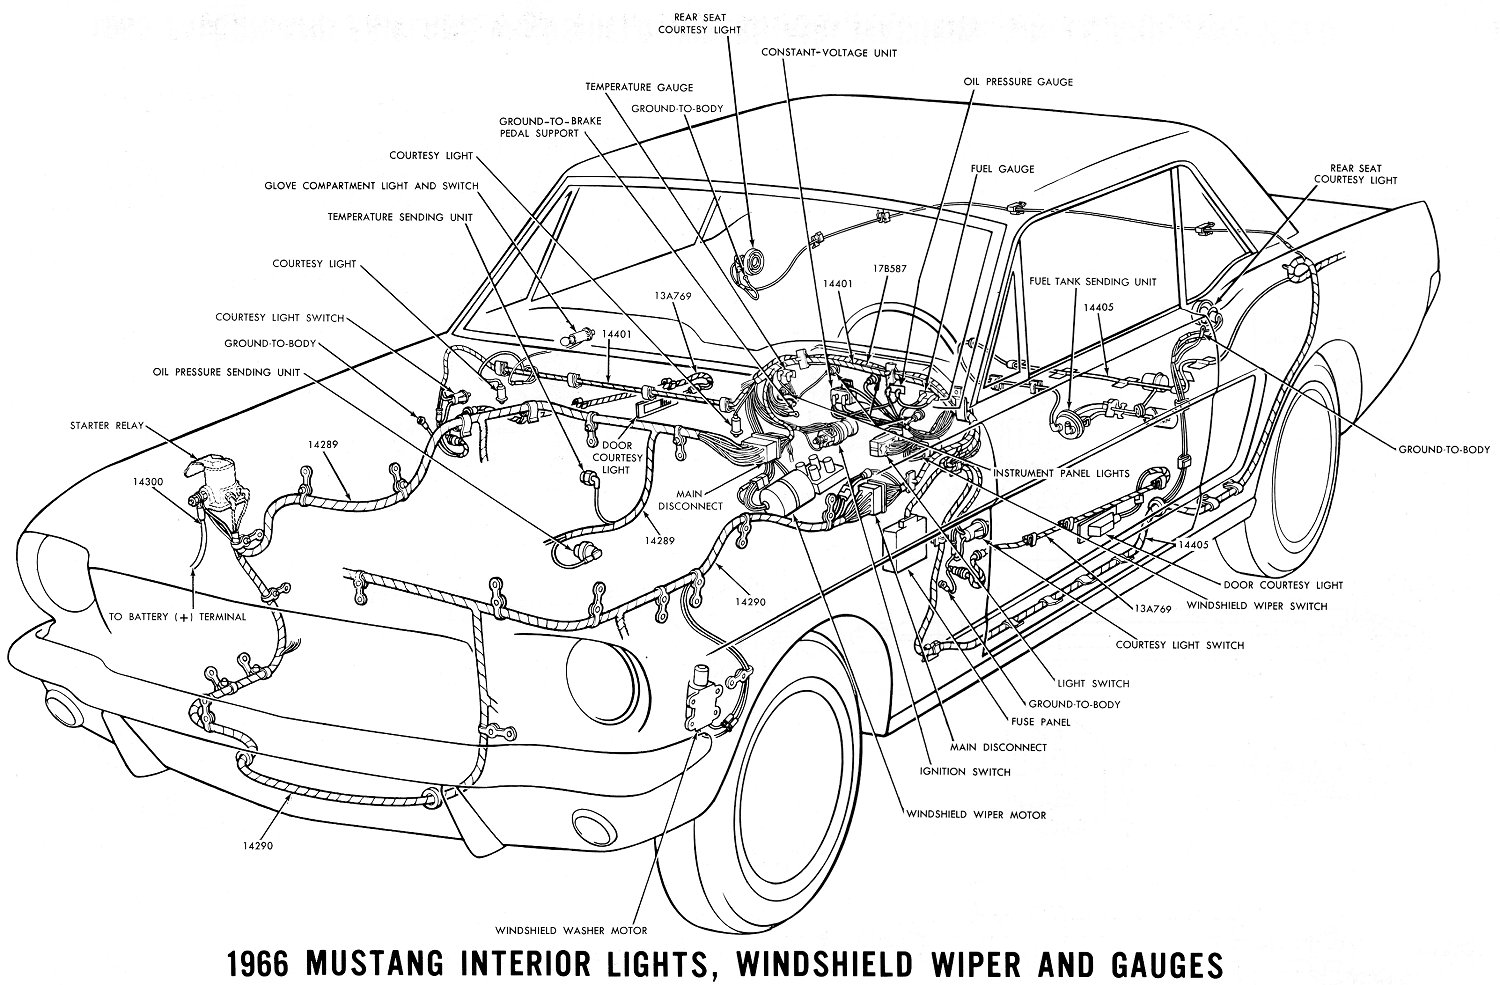 Vintage Mustang Wiring Diagrams Lighting Schematics 66 Interior Detail